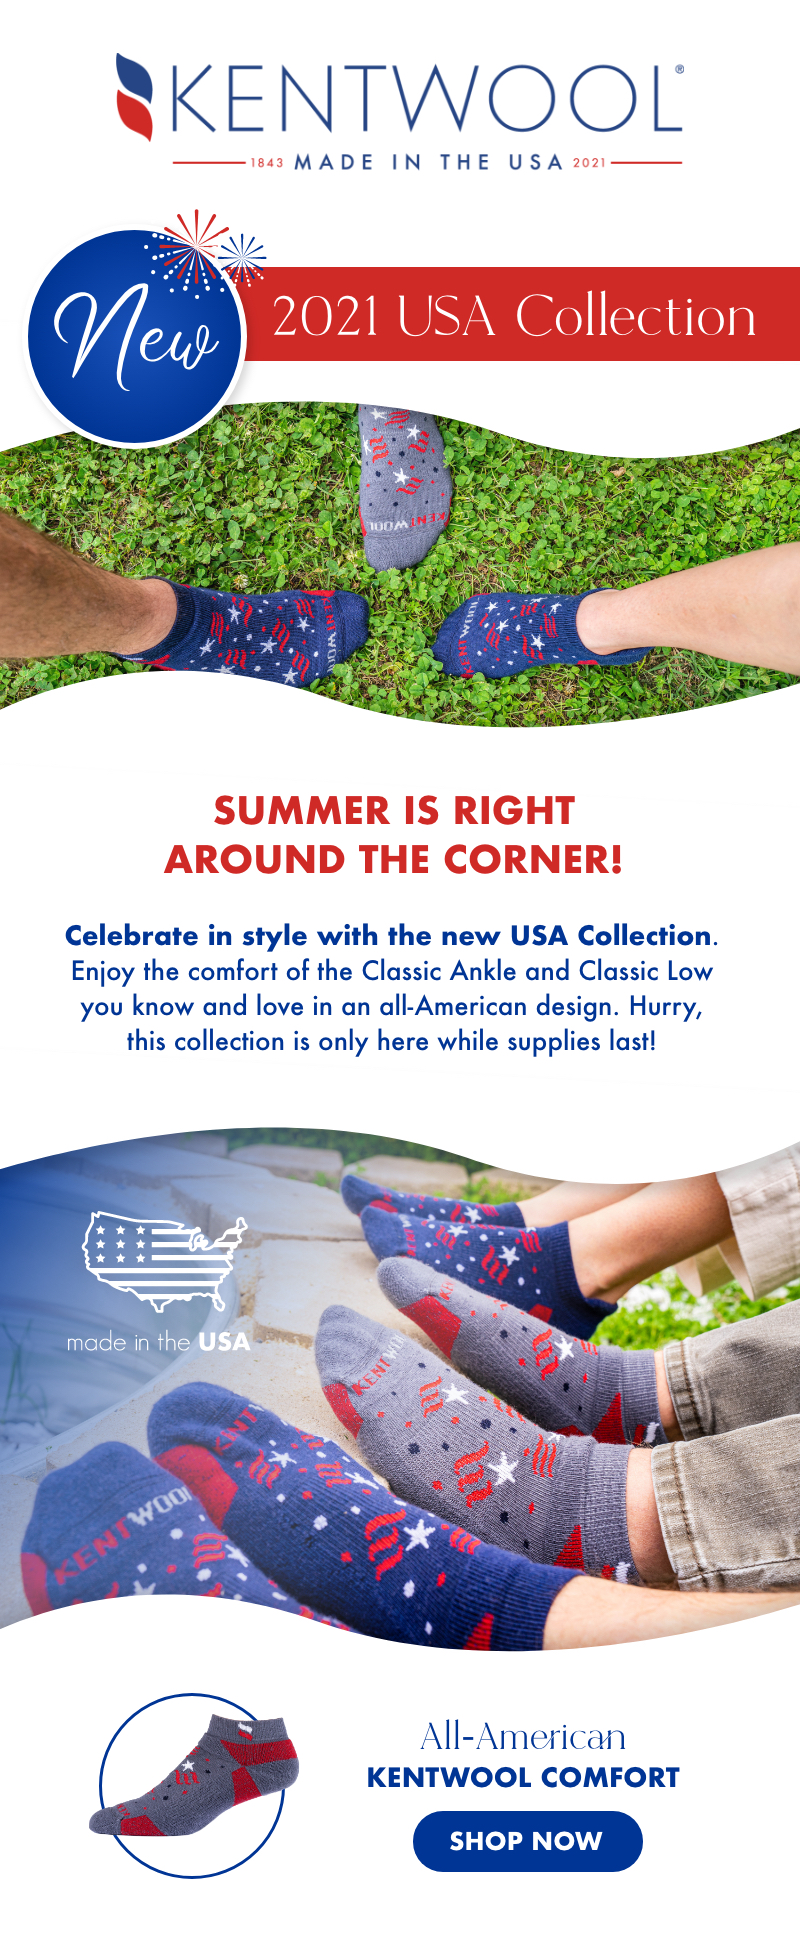 1021 - USA Collection Launch May Email